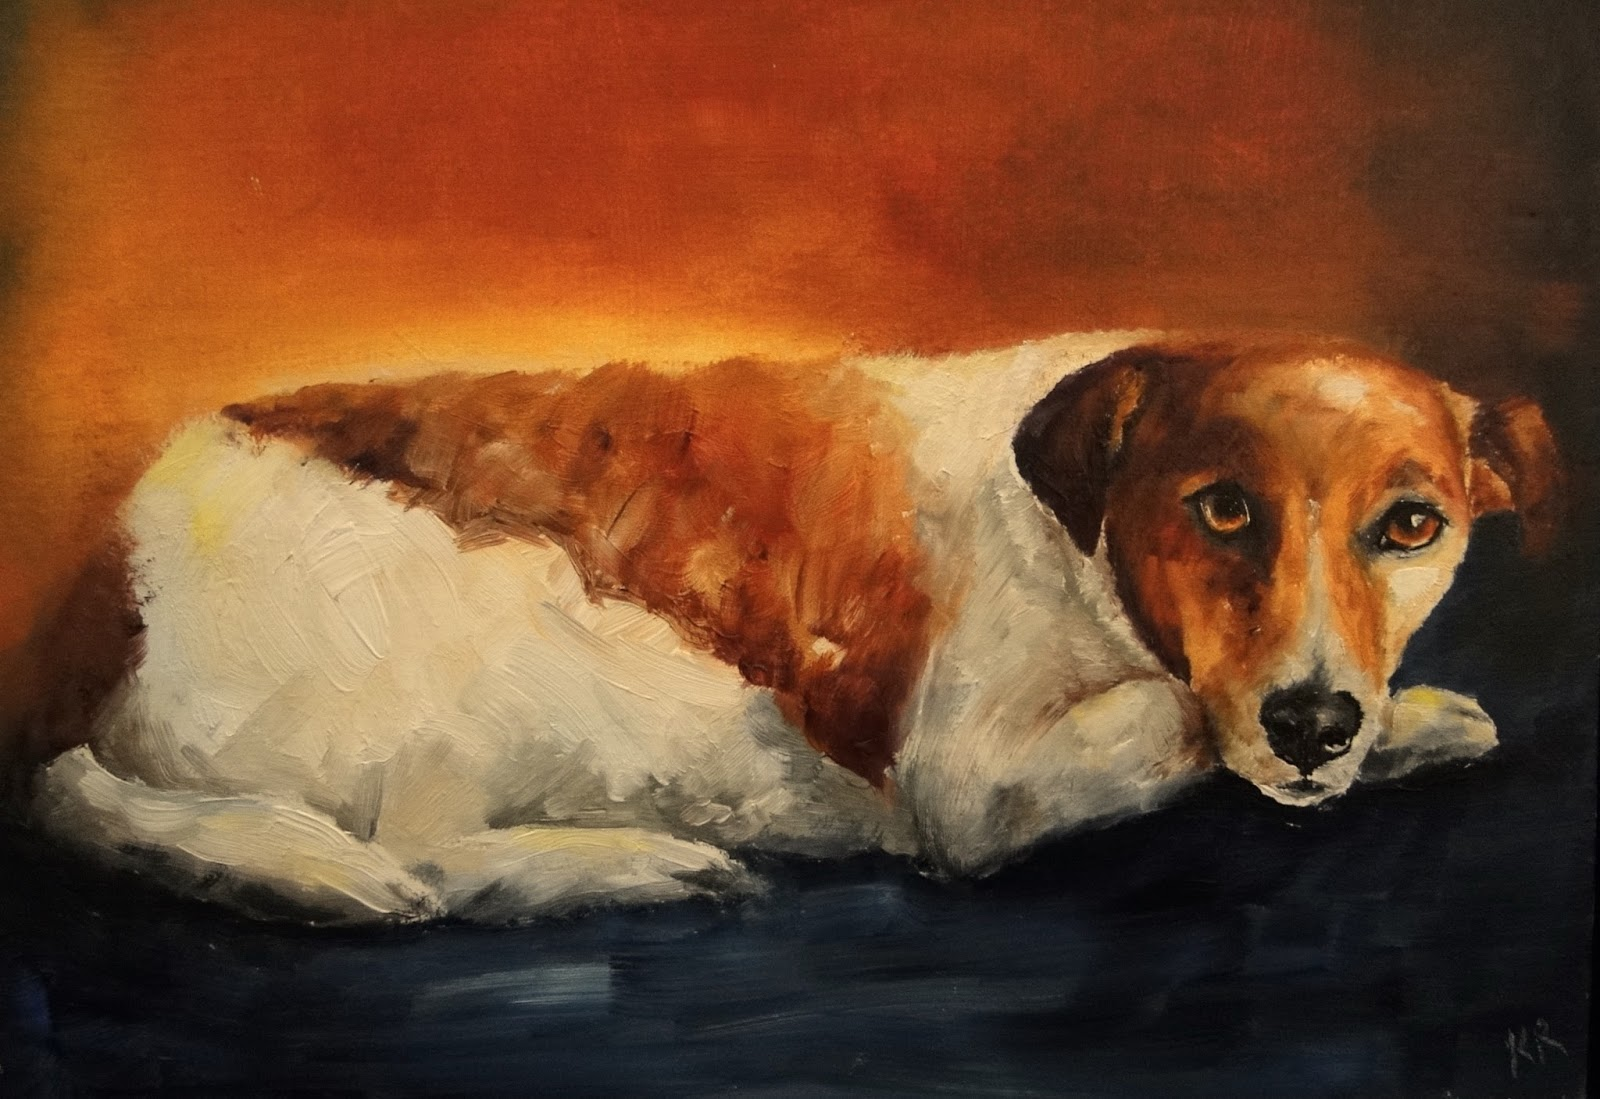 Ratting in the barn, oil painting of a JRT, a pet portrait, dog painting, animal artist, Karen Robinson